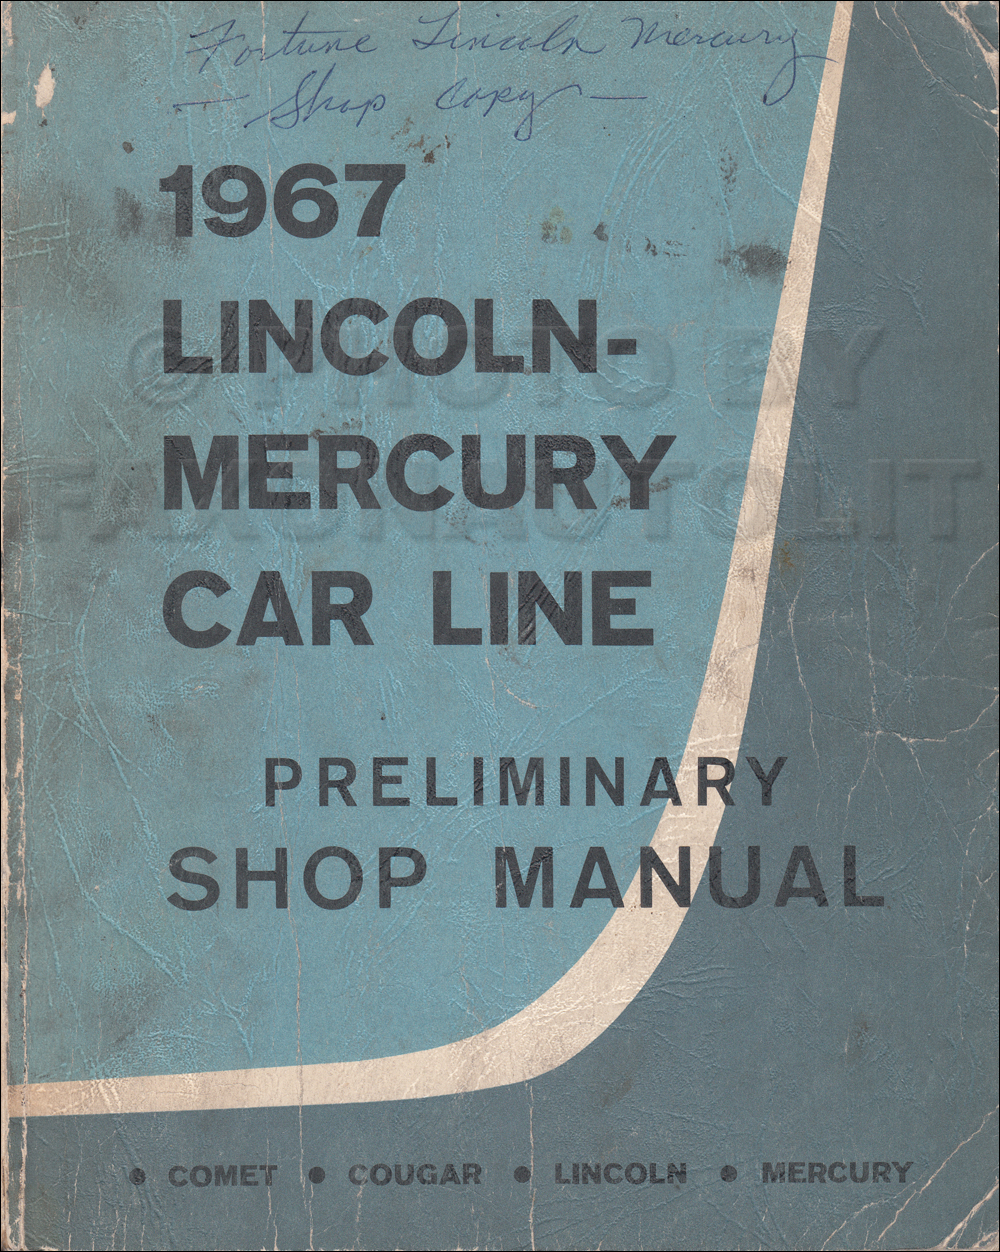 1970 Ford Maverick Original Preliminary Shop Manual